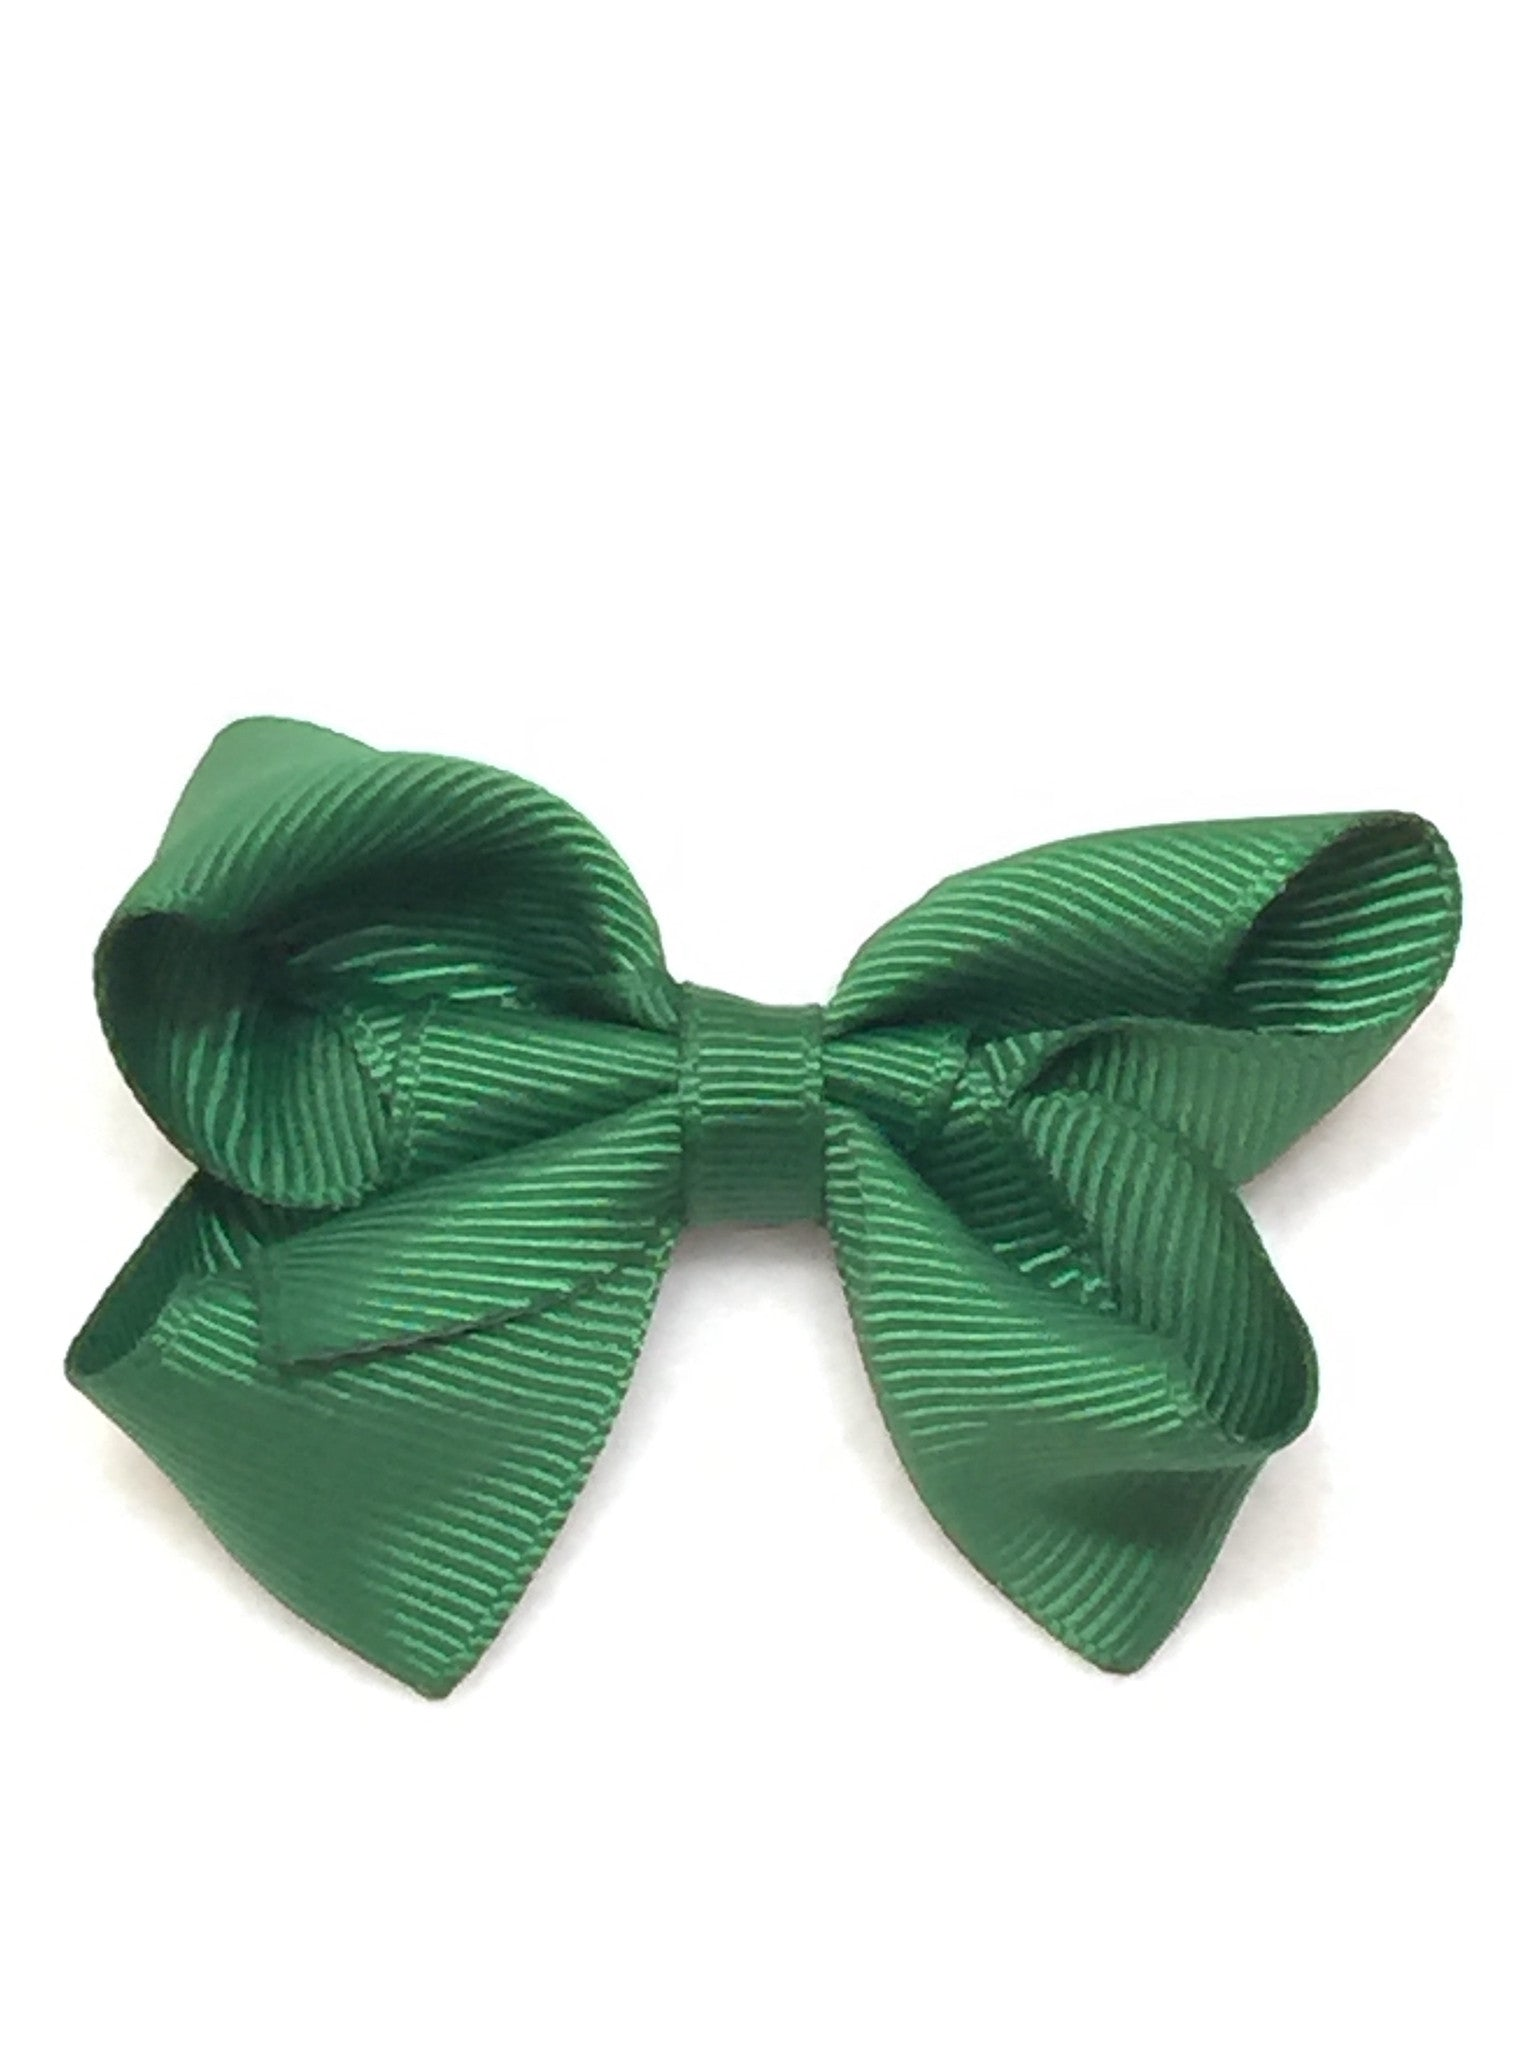 Small Hair Bow - Hunter Green - Cutie Bowtutie